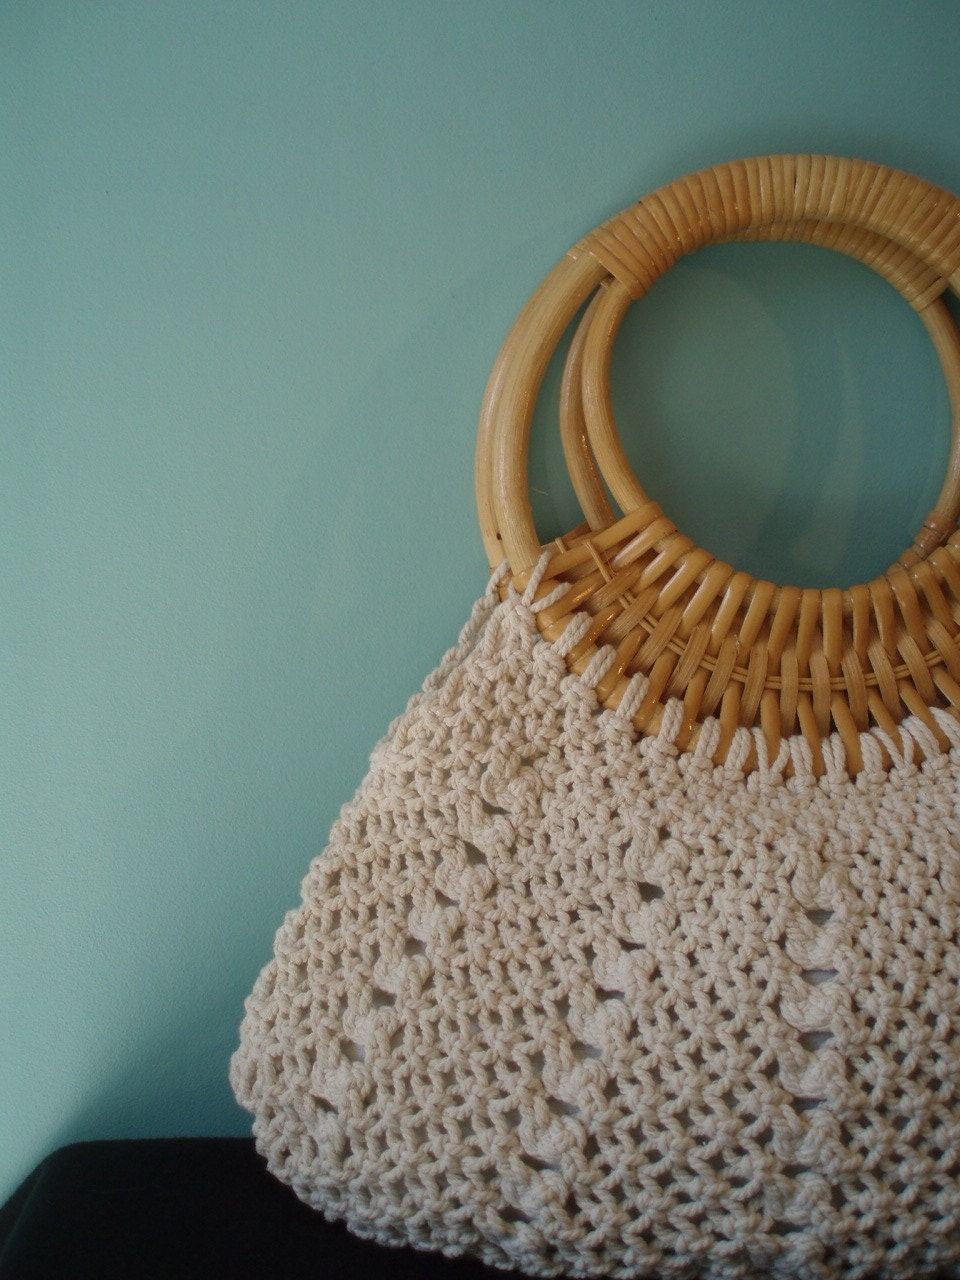 Cute For Spring... Macrame and Bamboo Handbag